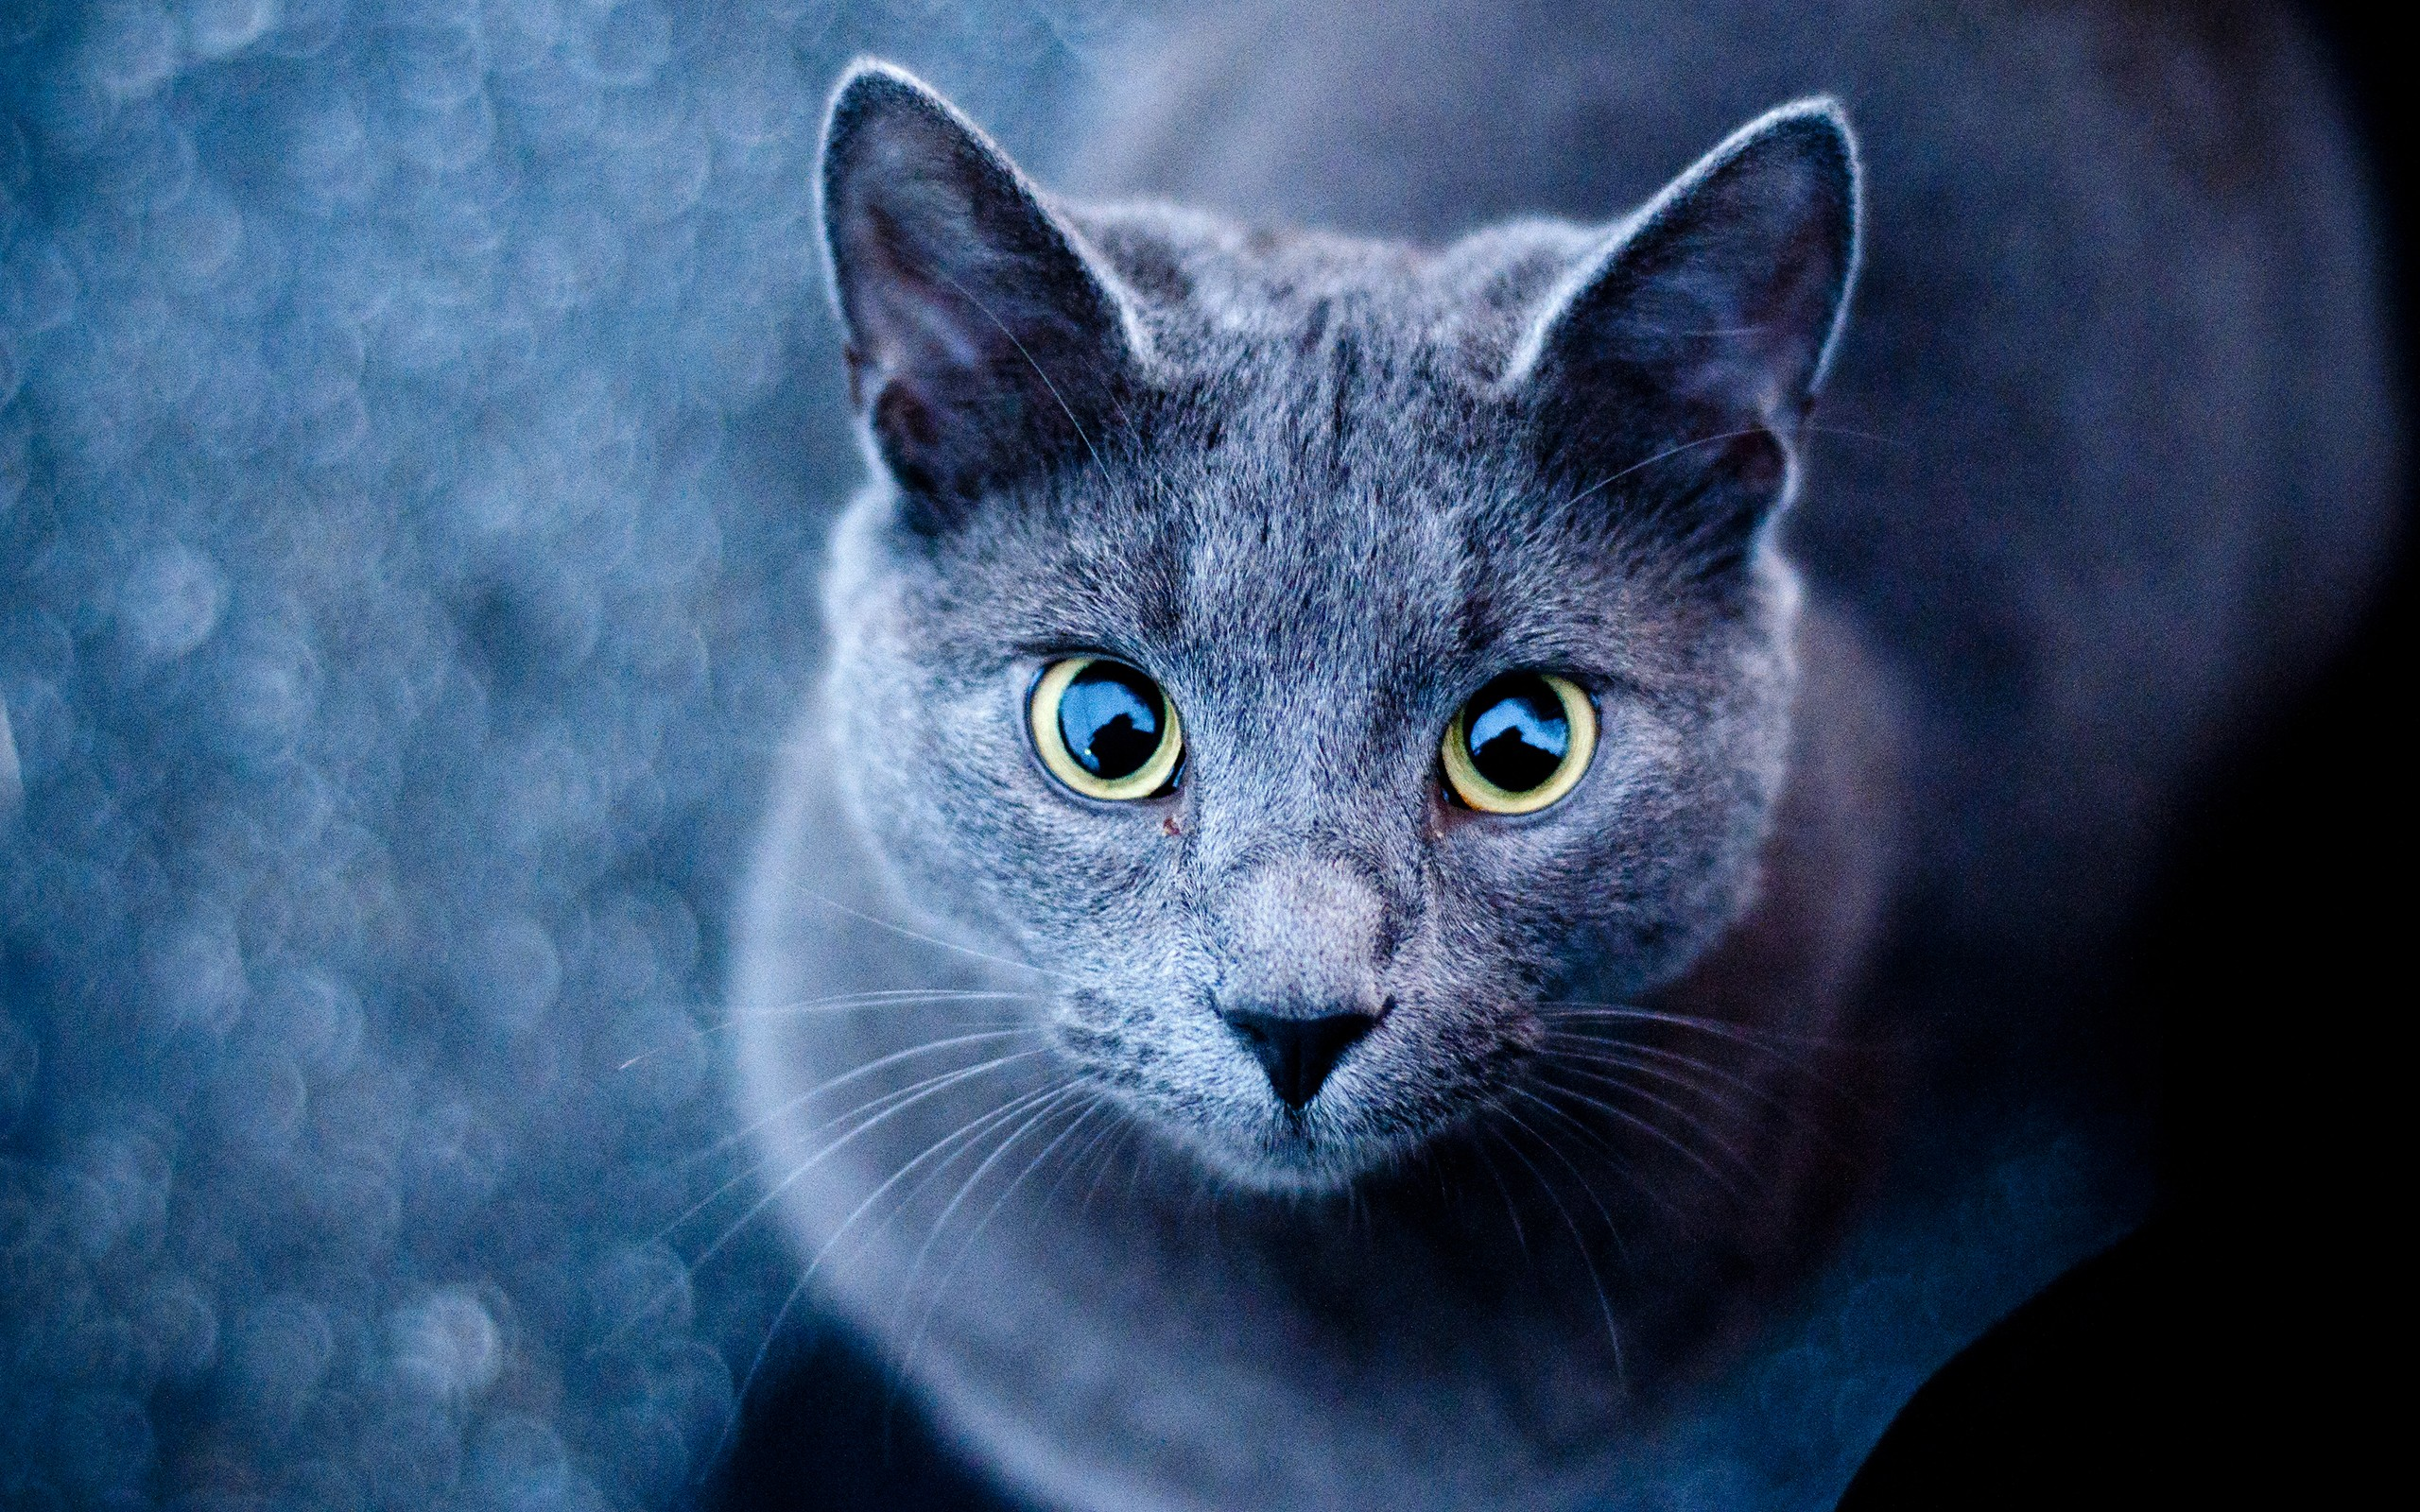 Blue Cat Green Eyes wallpapers | Blue Cat Green Eyes stock ...